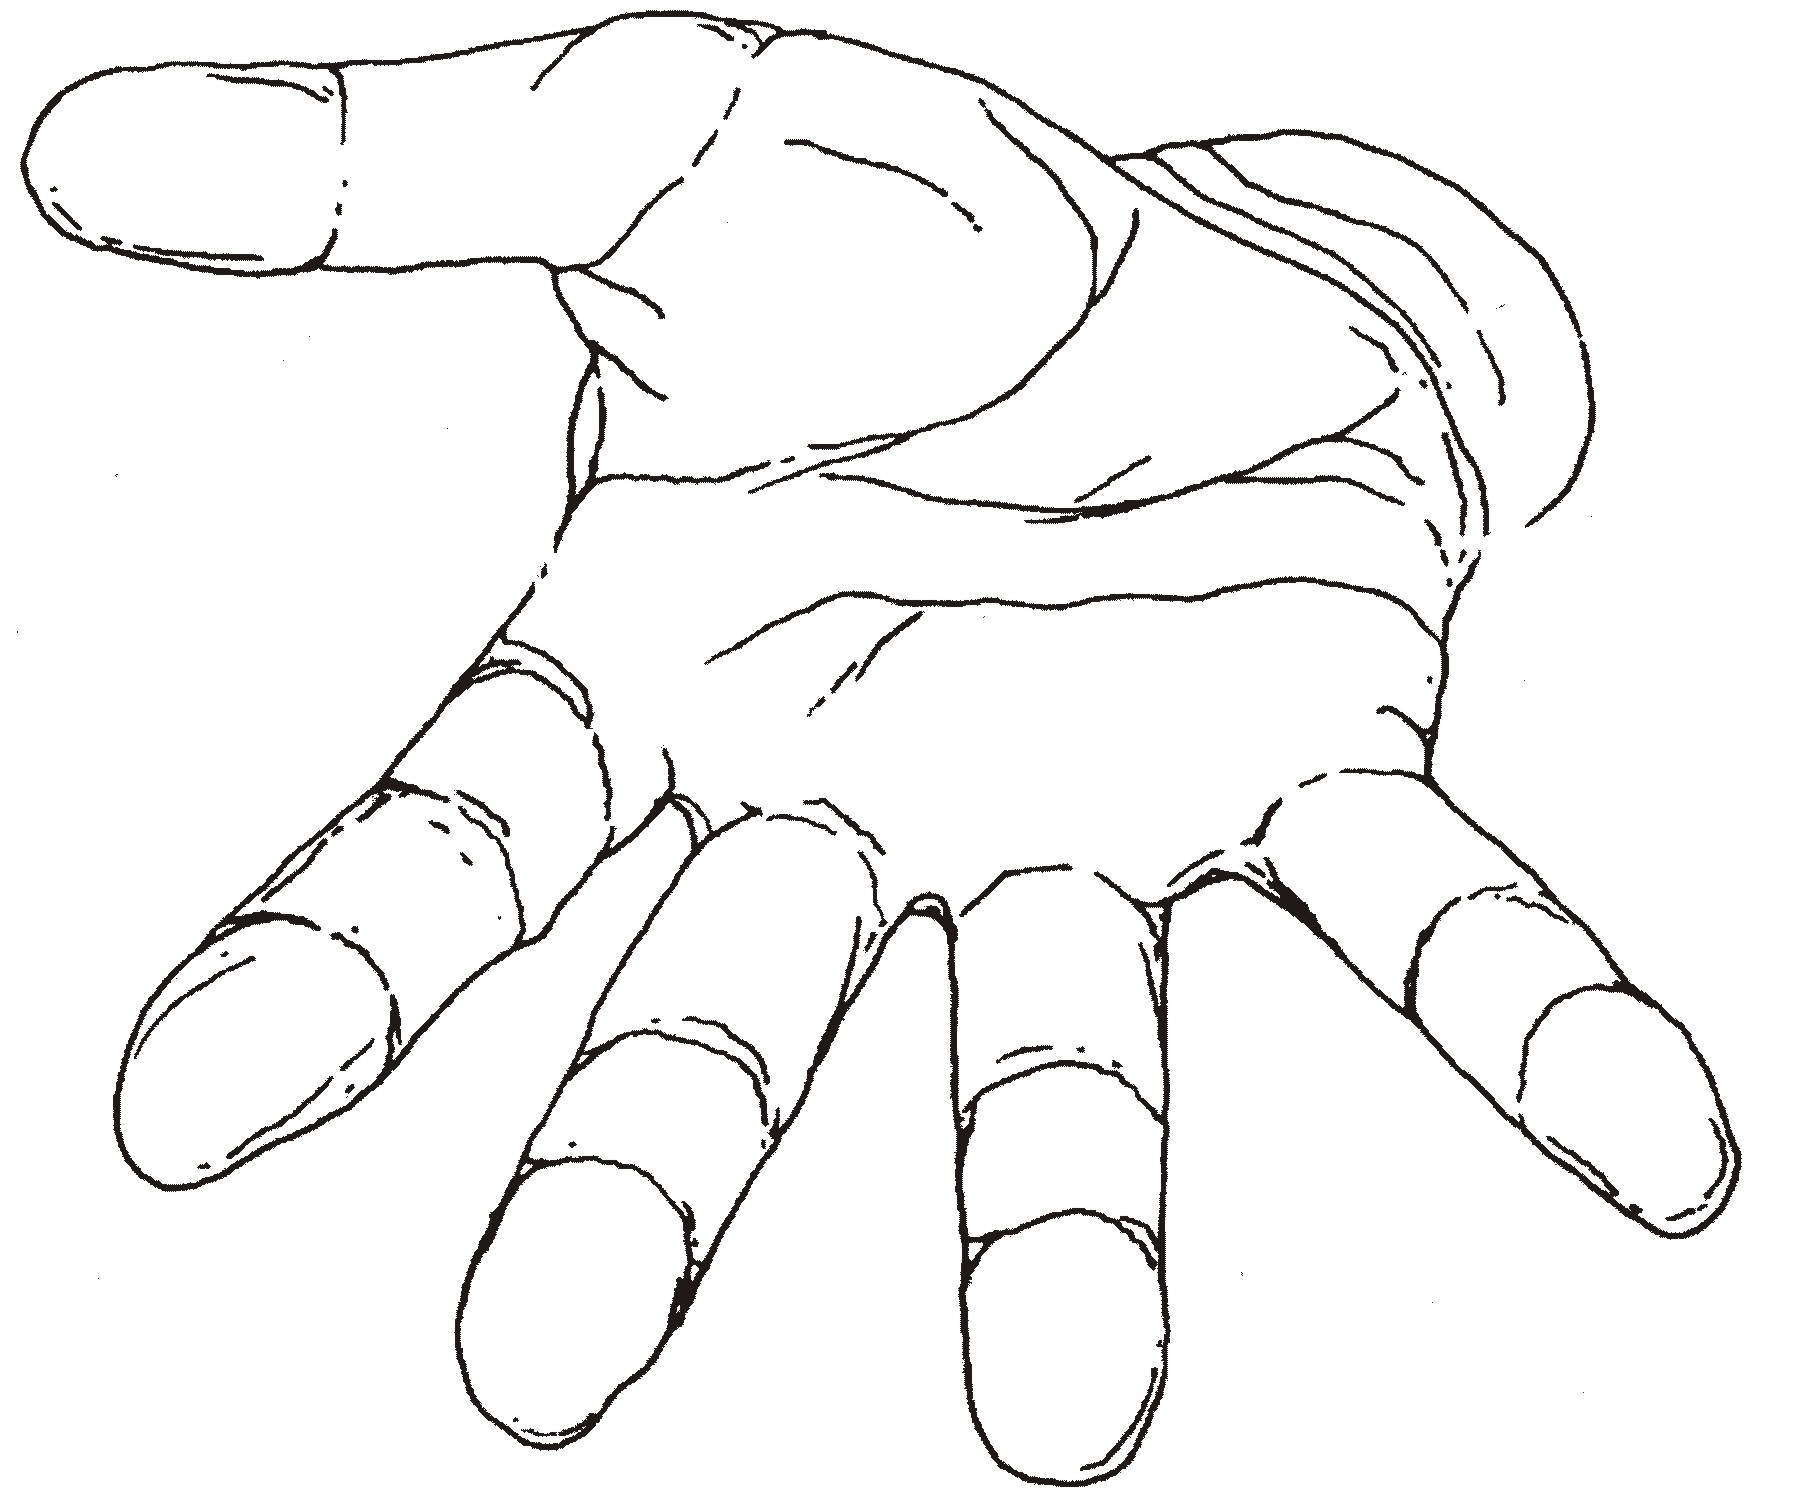 photograph about Hand Outline Printable titled 14 Hand Determine Template Printable Frees That Your self Can